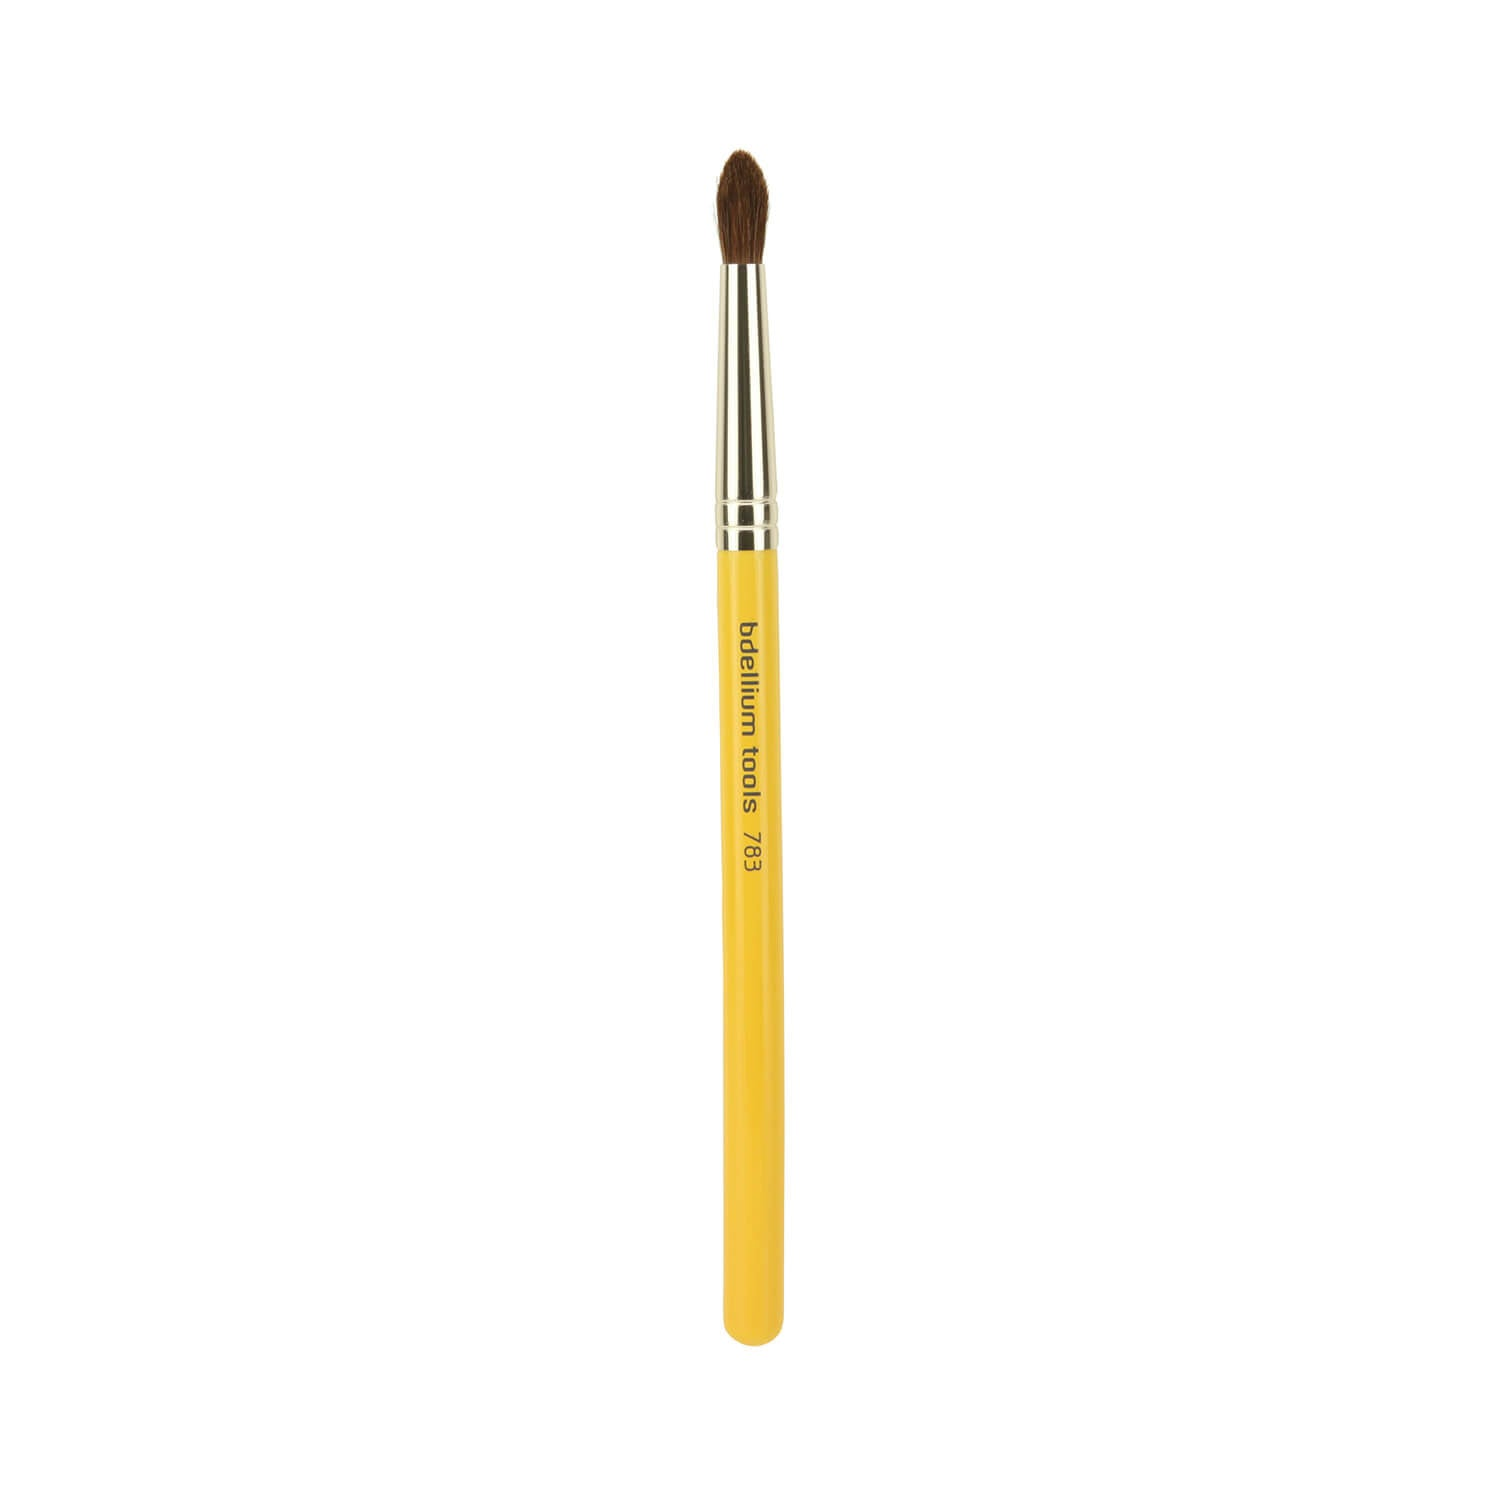 BDellium Tools Studio Line 783 Small Tapered Blending Brush Yellow